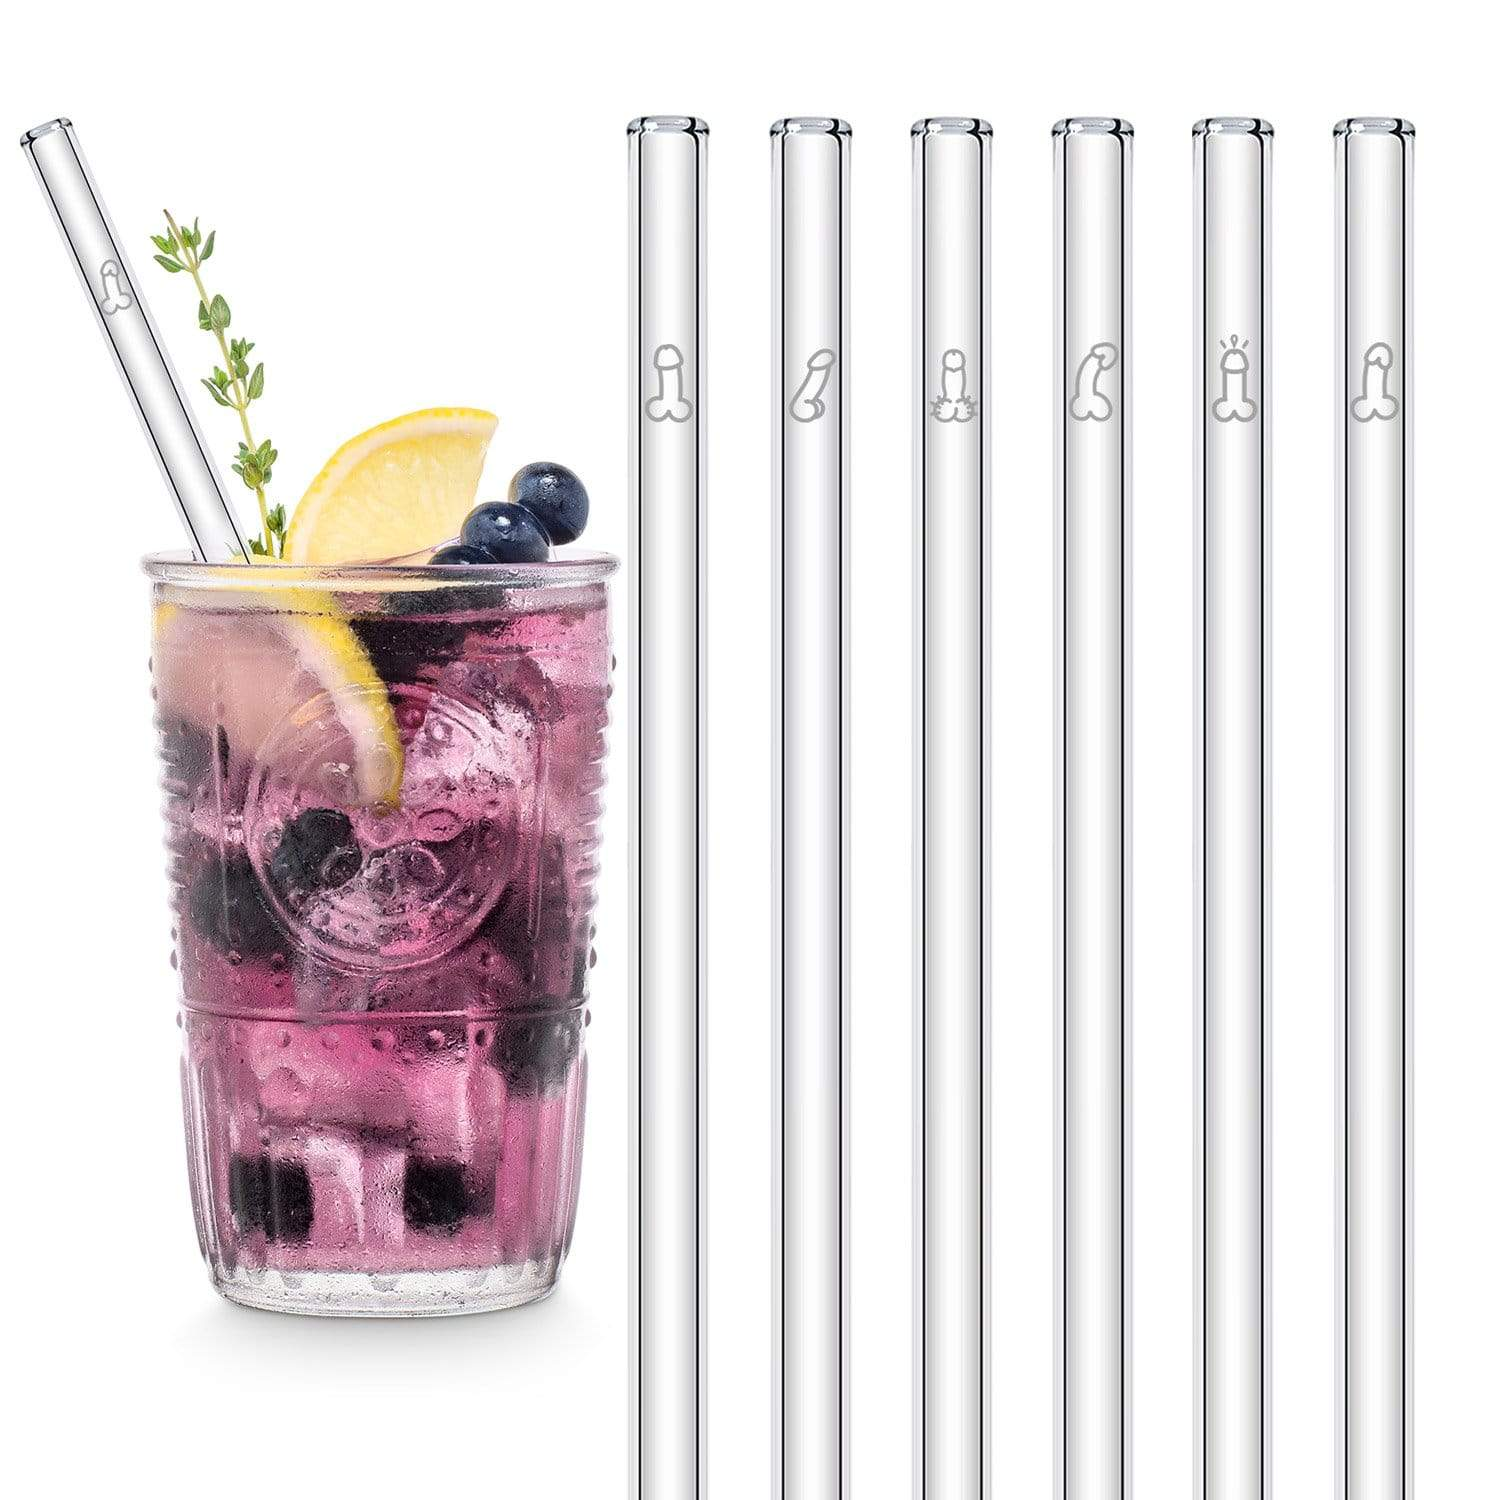 Penis Strohhalm Edition 6x 20cm Glastrinkhalme Willy Straws